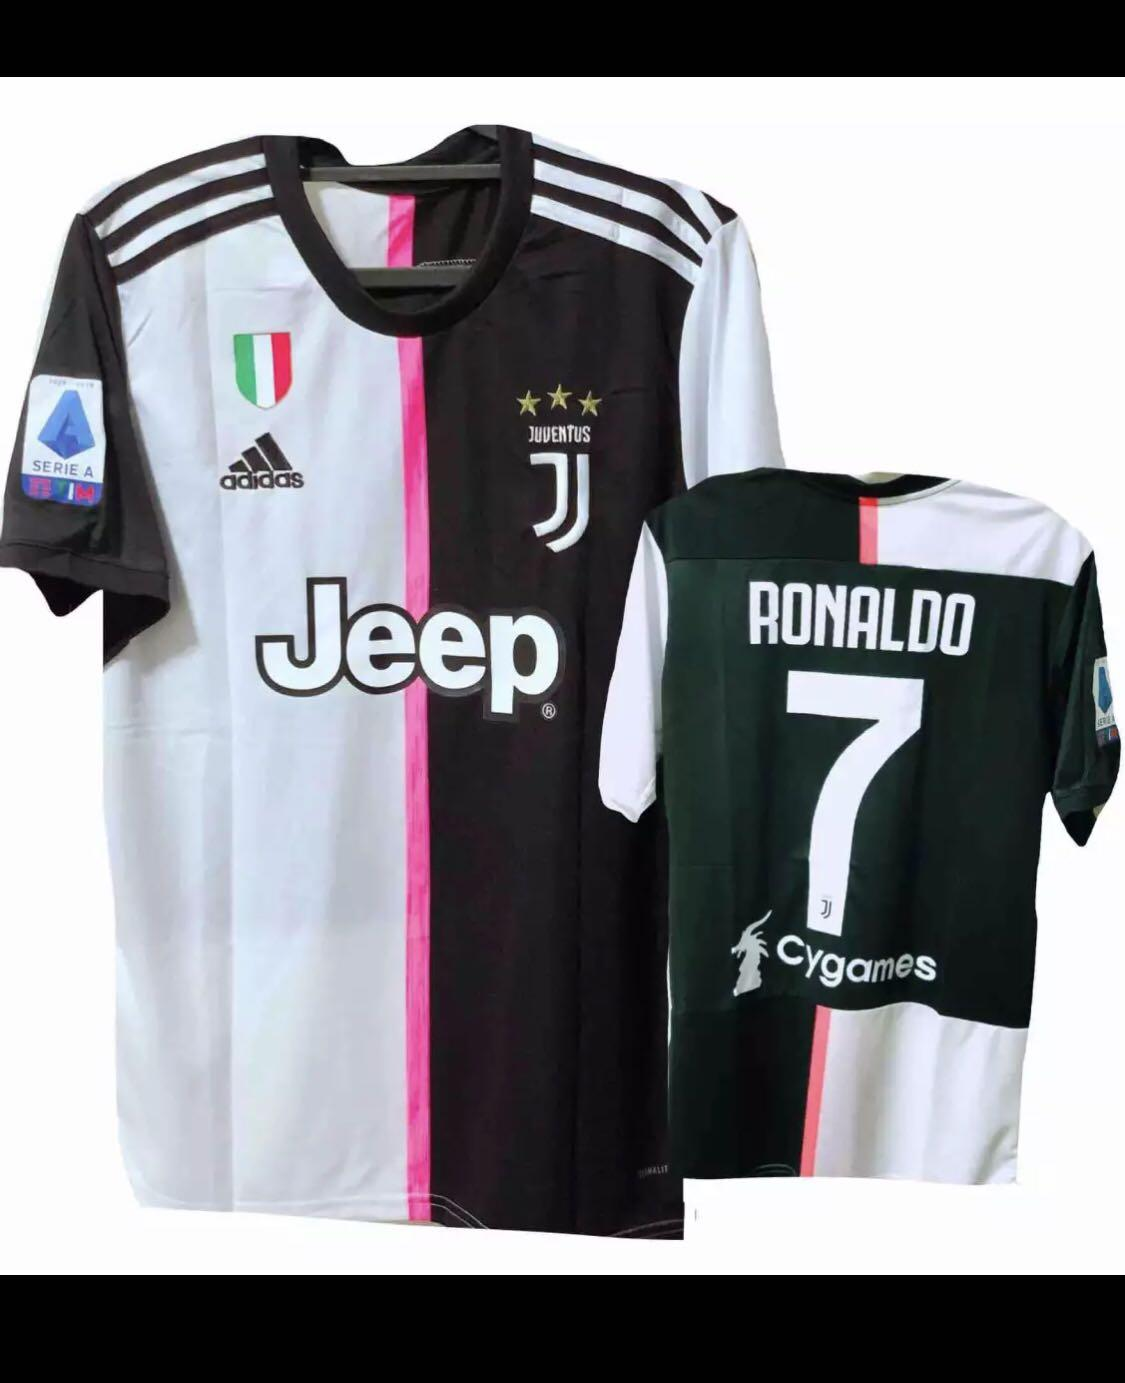 meet b8763 d5429 19/20 RONALDO Juventus Home Football Jersey, Sports, Sports ...